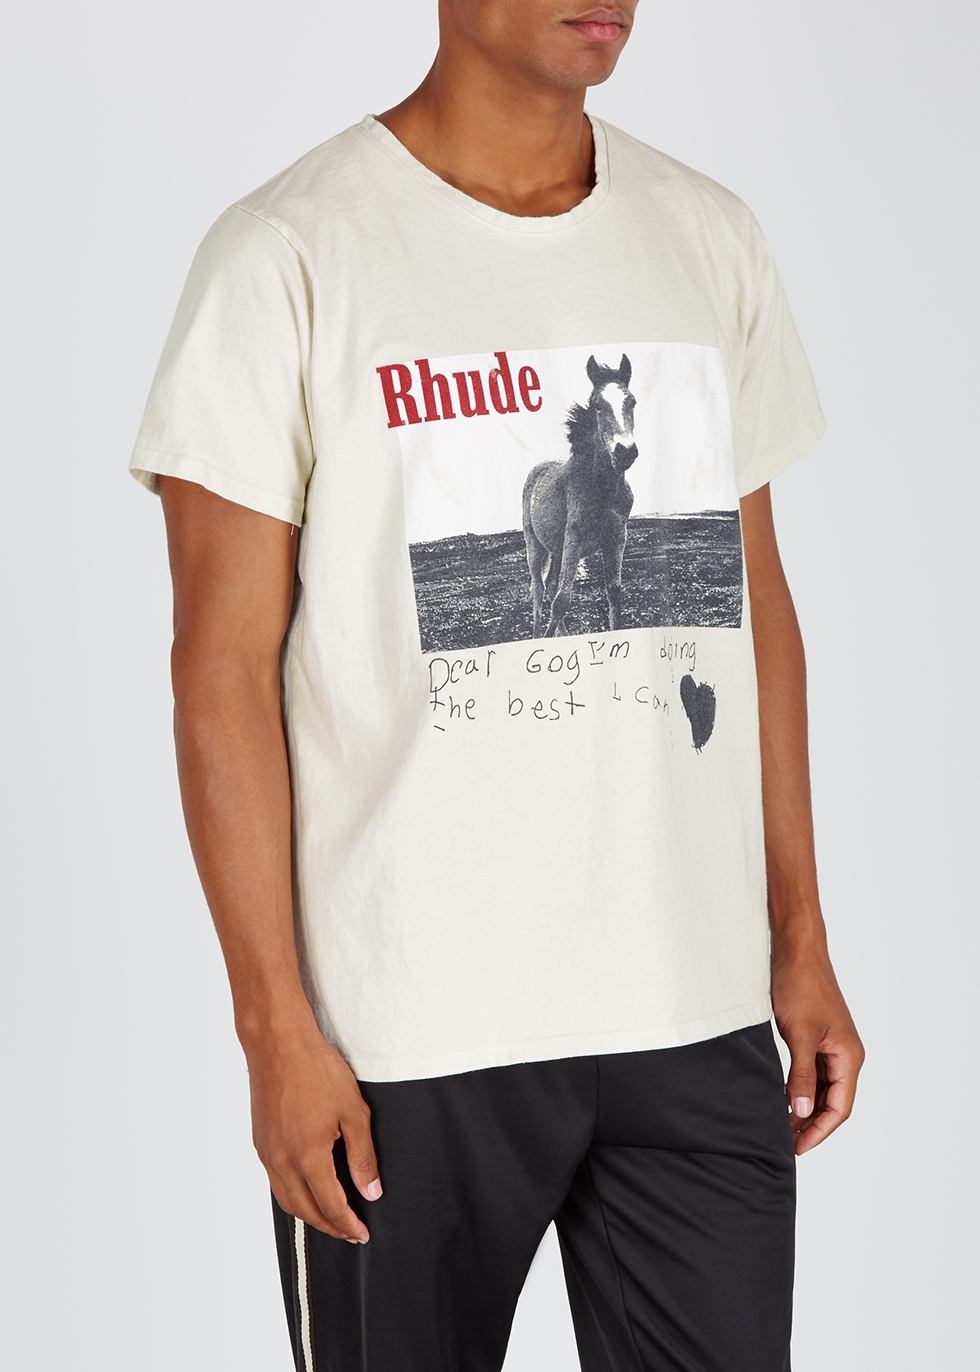 Off-white cotton T-shirt - RHUDE